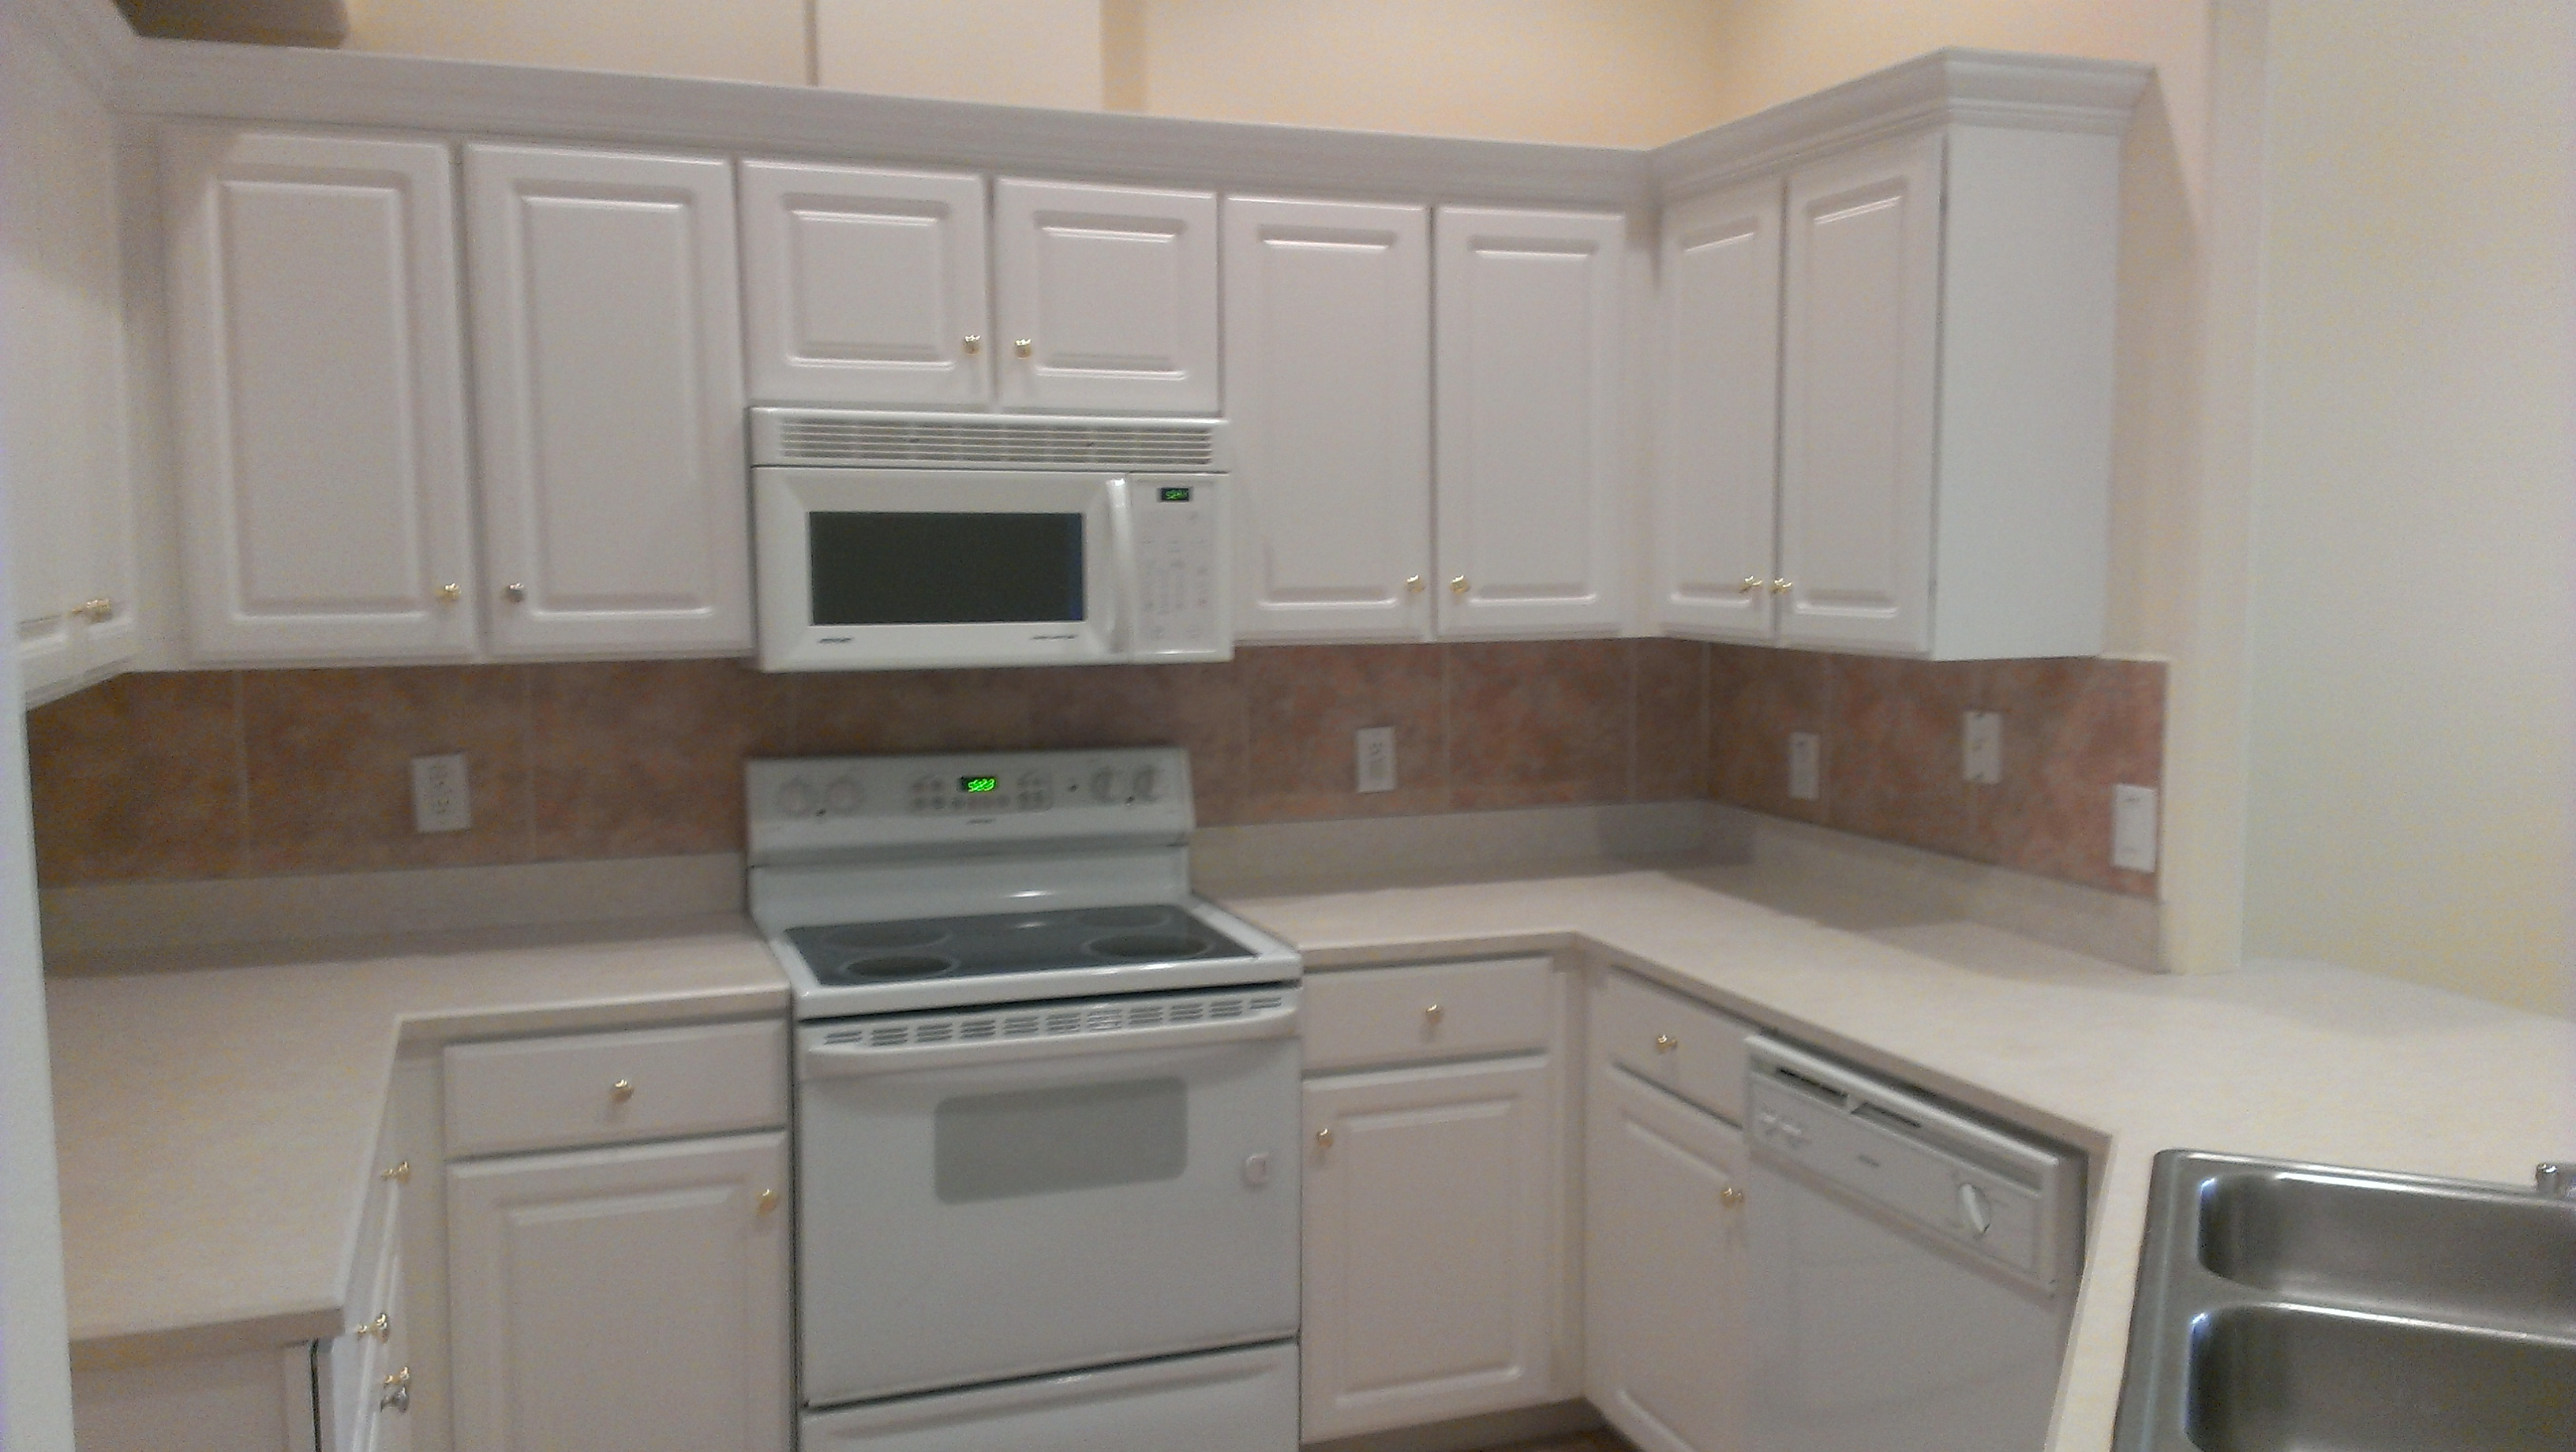 painting vs refacing kitchen cabinets cabinet refacing contractors in daytona and 24552